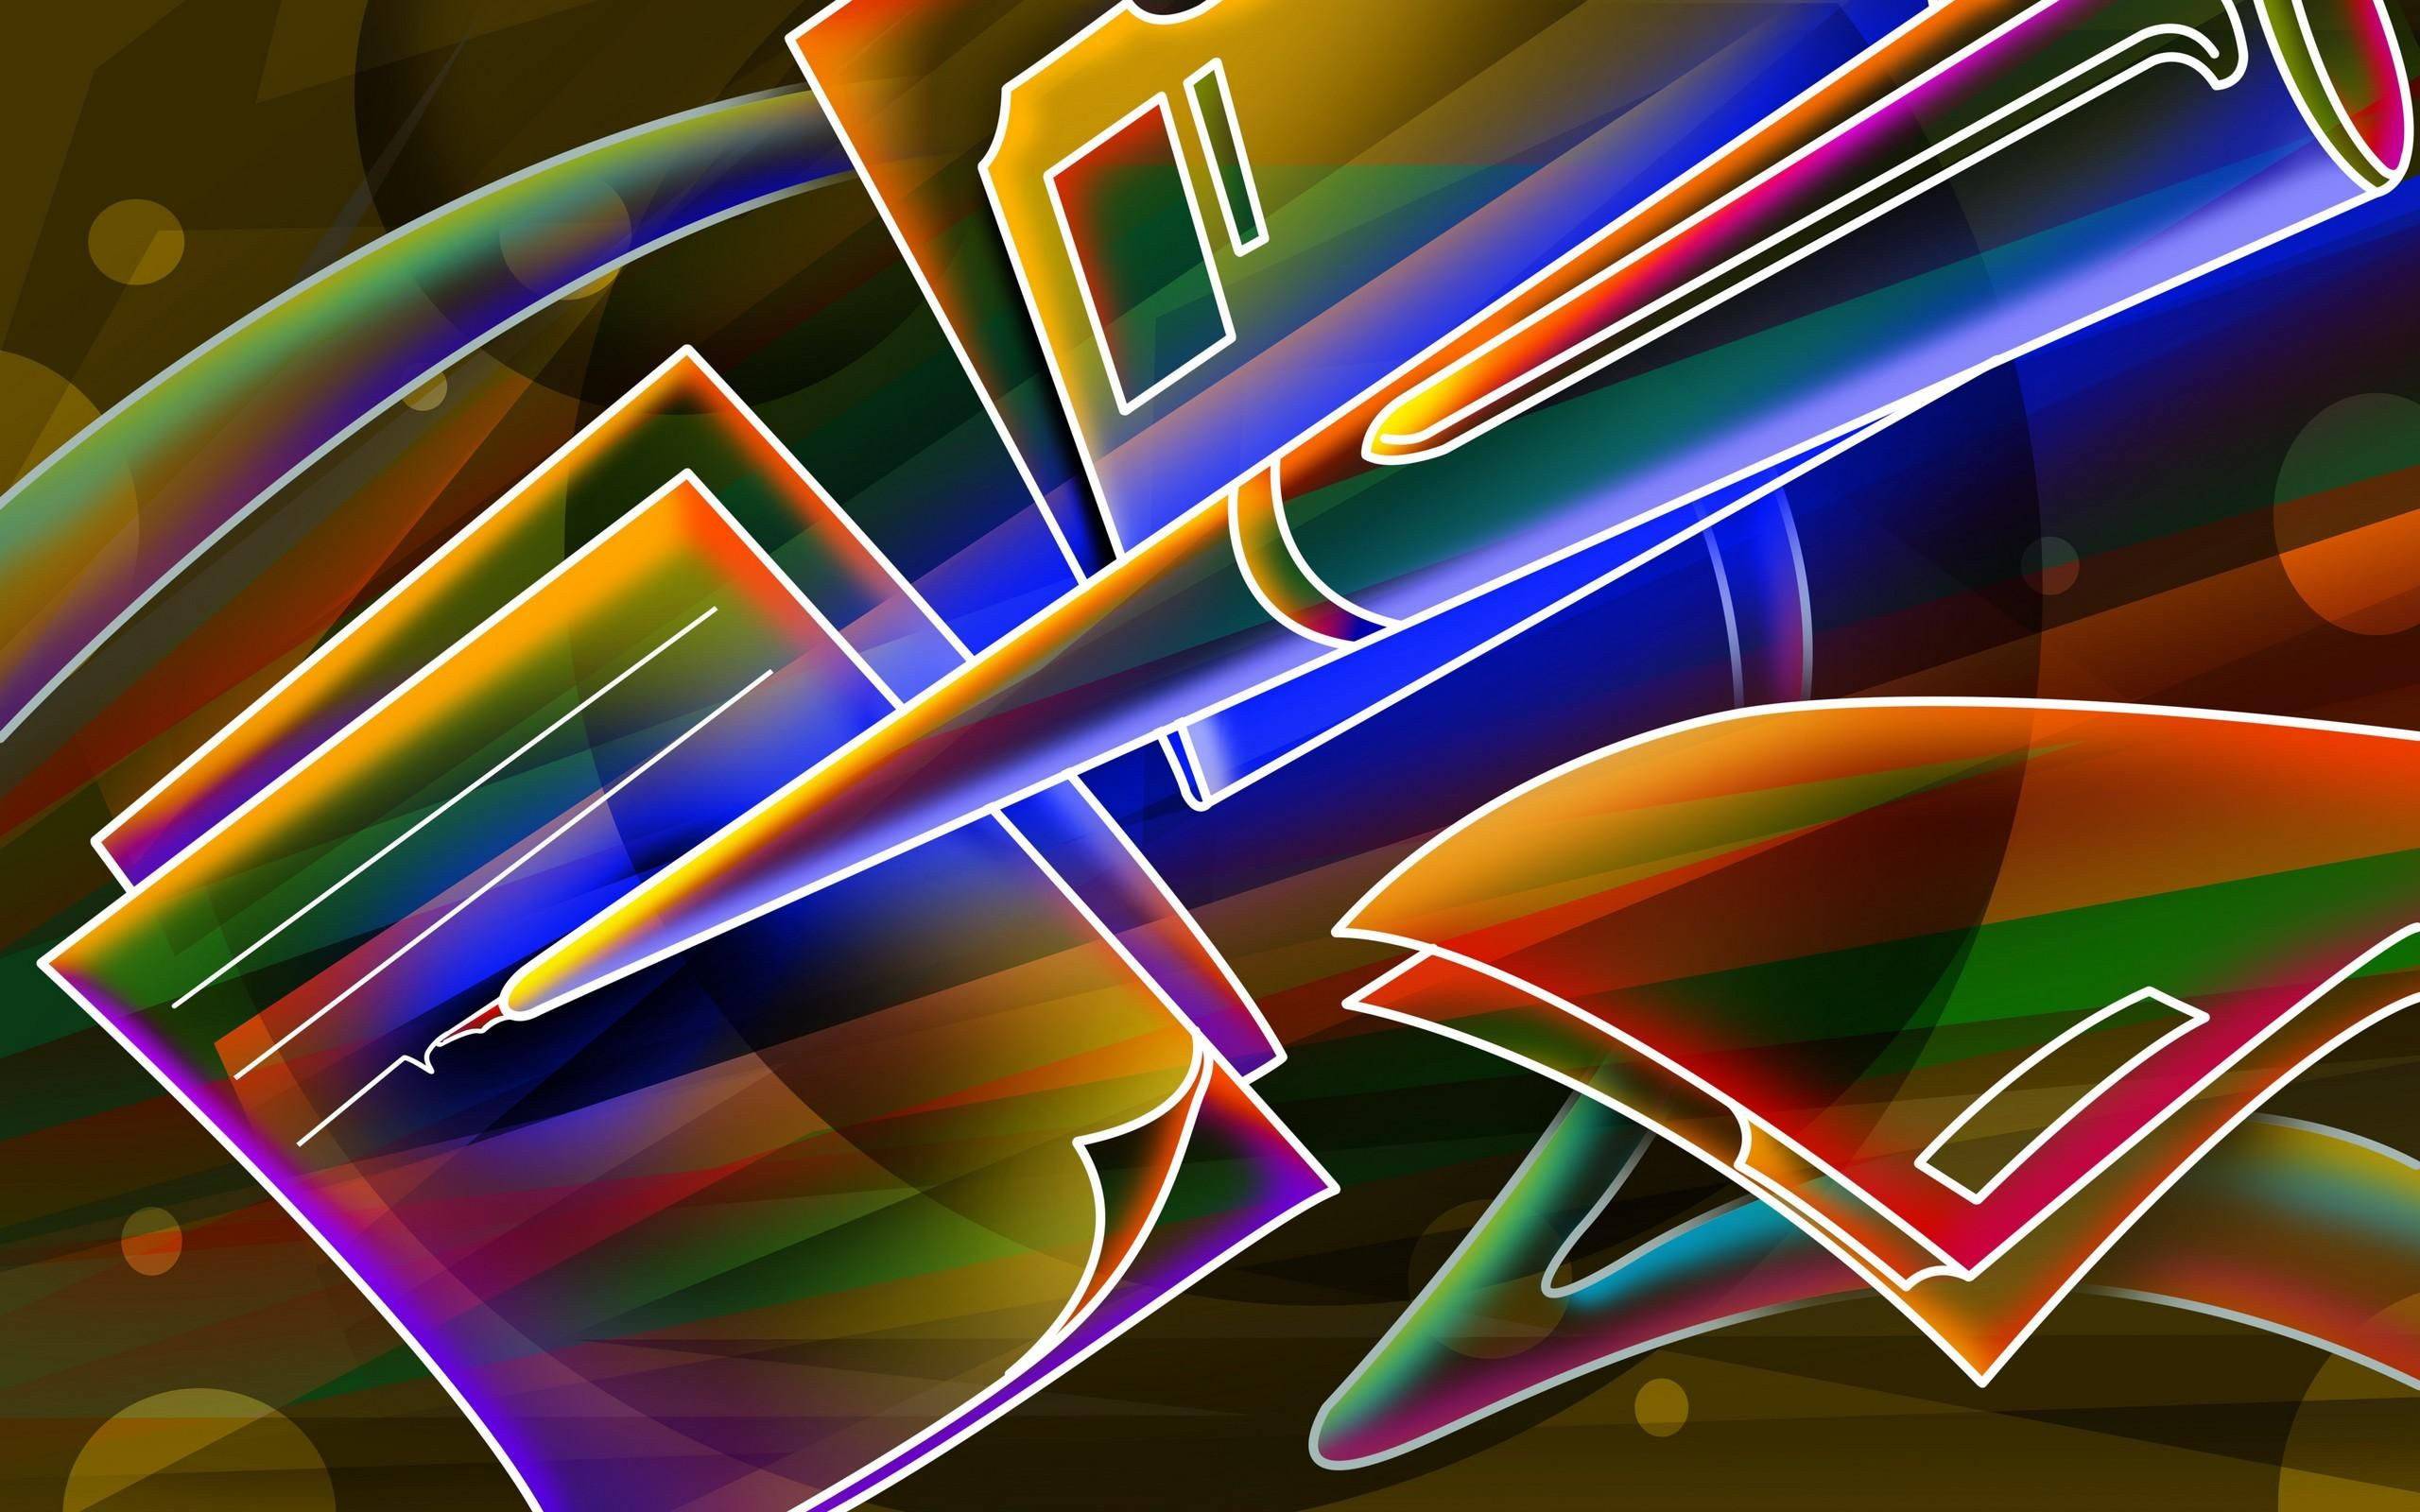 2560x1600 3d Neon Colorful Wallpaper Free Wallpapers Download